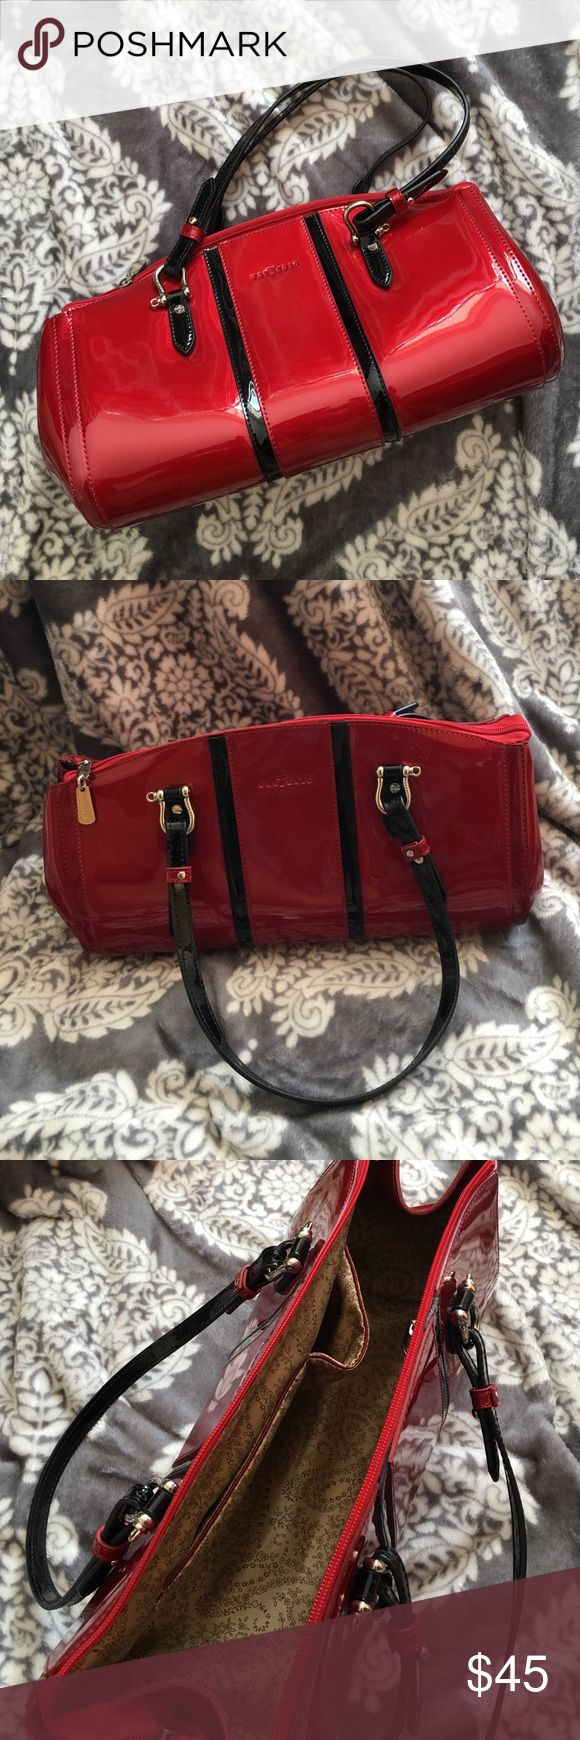 Red Patent Leather Frederic T Handbag Direct from Paris! This unique red stunner is a hard find in the US. Beautiful red patent leather with black accents and silver hardware. Used less than five times! Comes with dust bag. From a pet free and nonsmoking home. Frederic T Bags Shoulder Bags